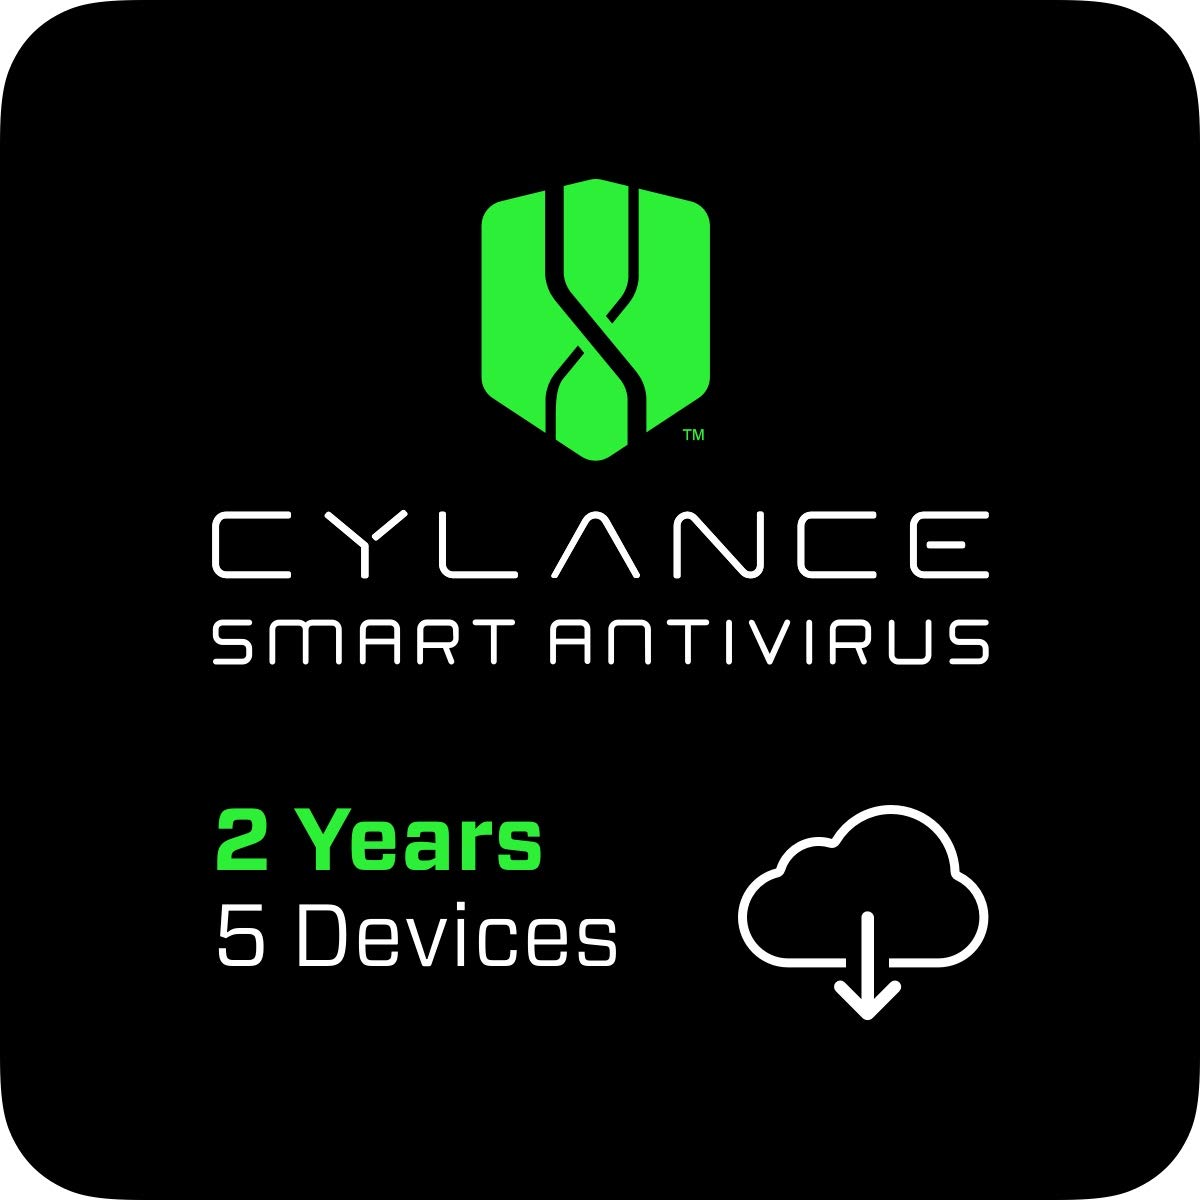 Cylance Smart Antivirus | 2 Years | 5 Devices [PC/Mac Online Code] by Cylance, Inc.